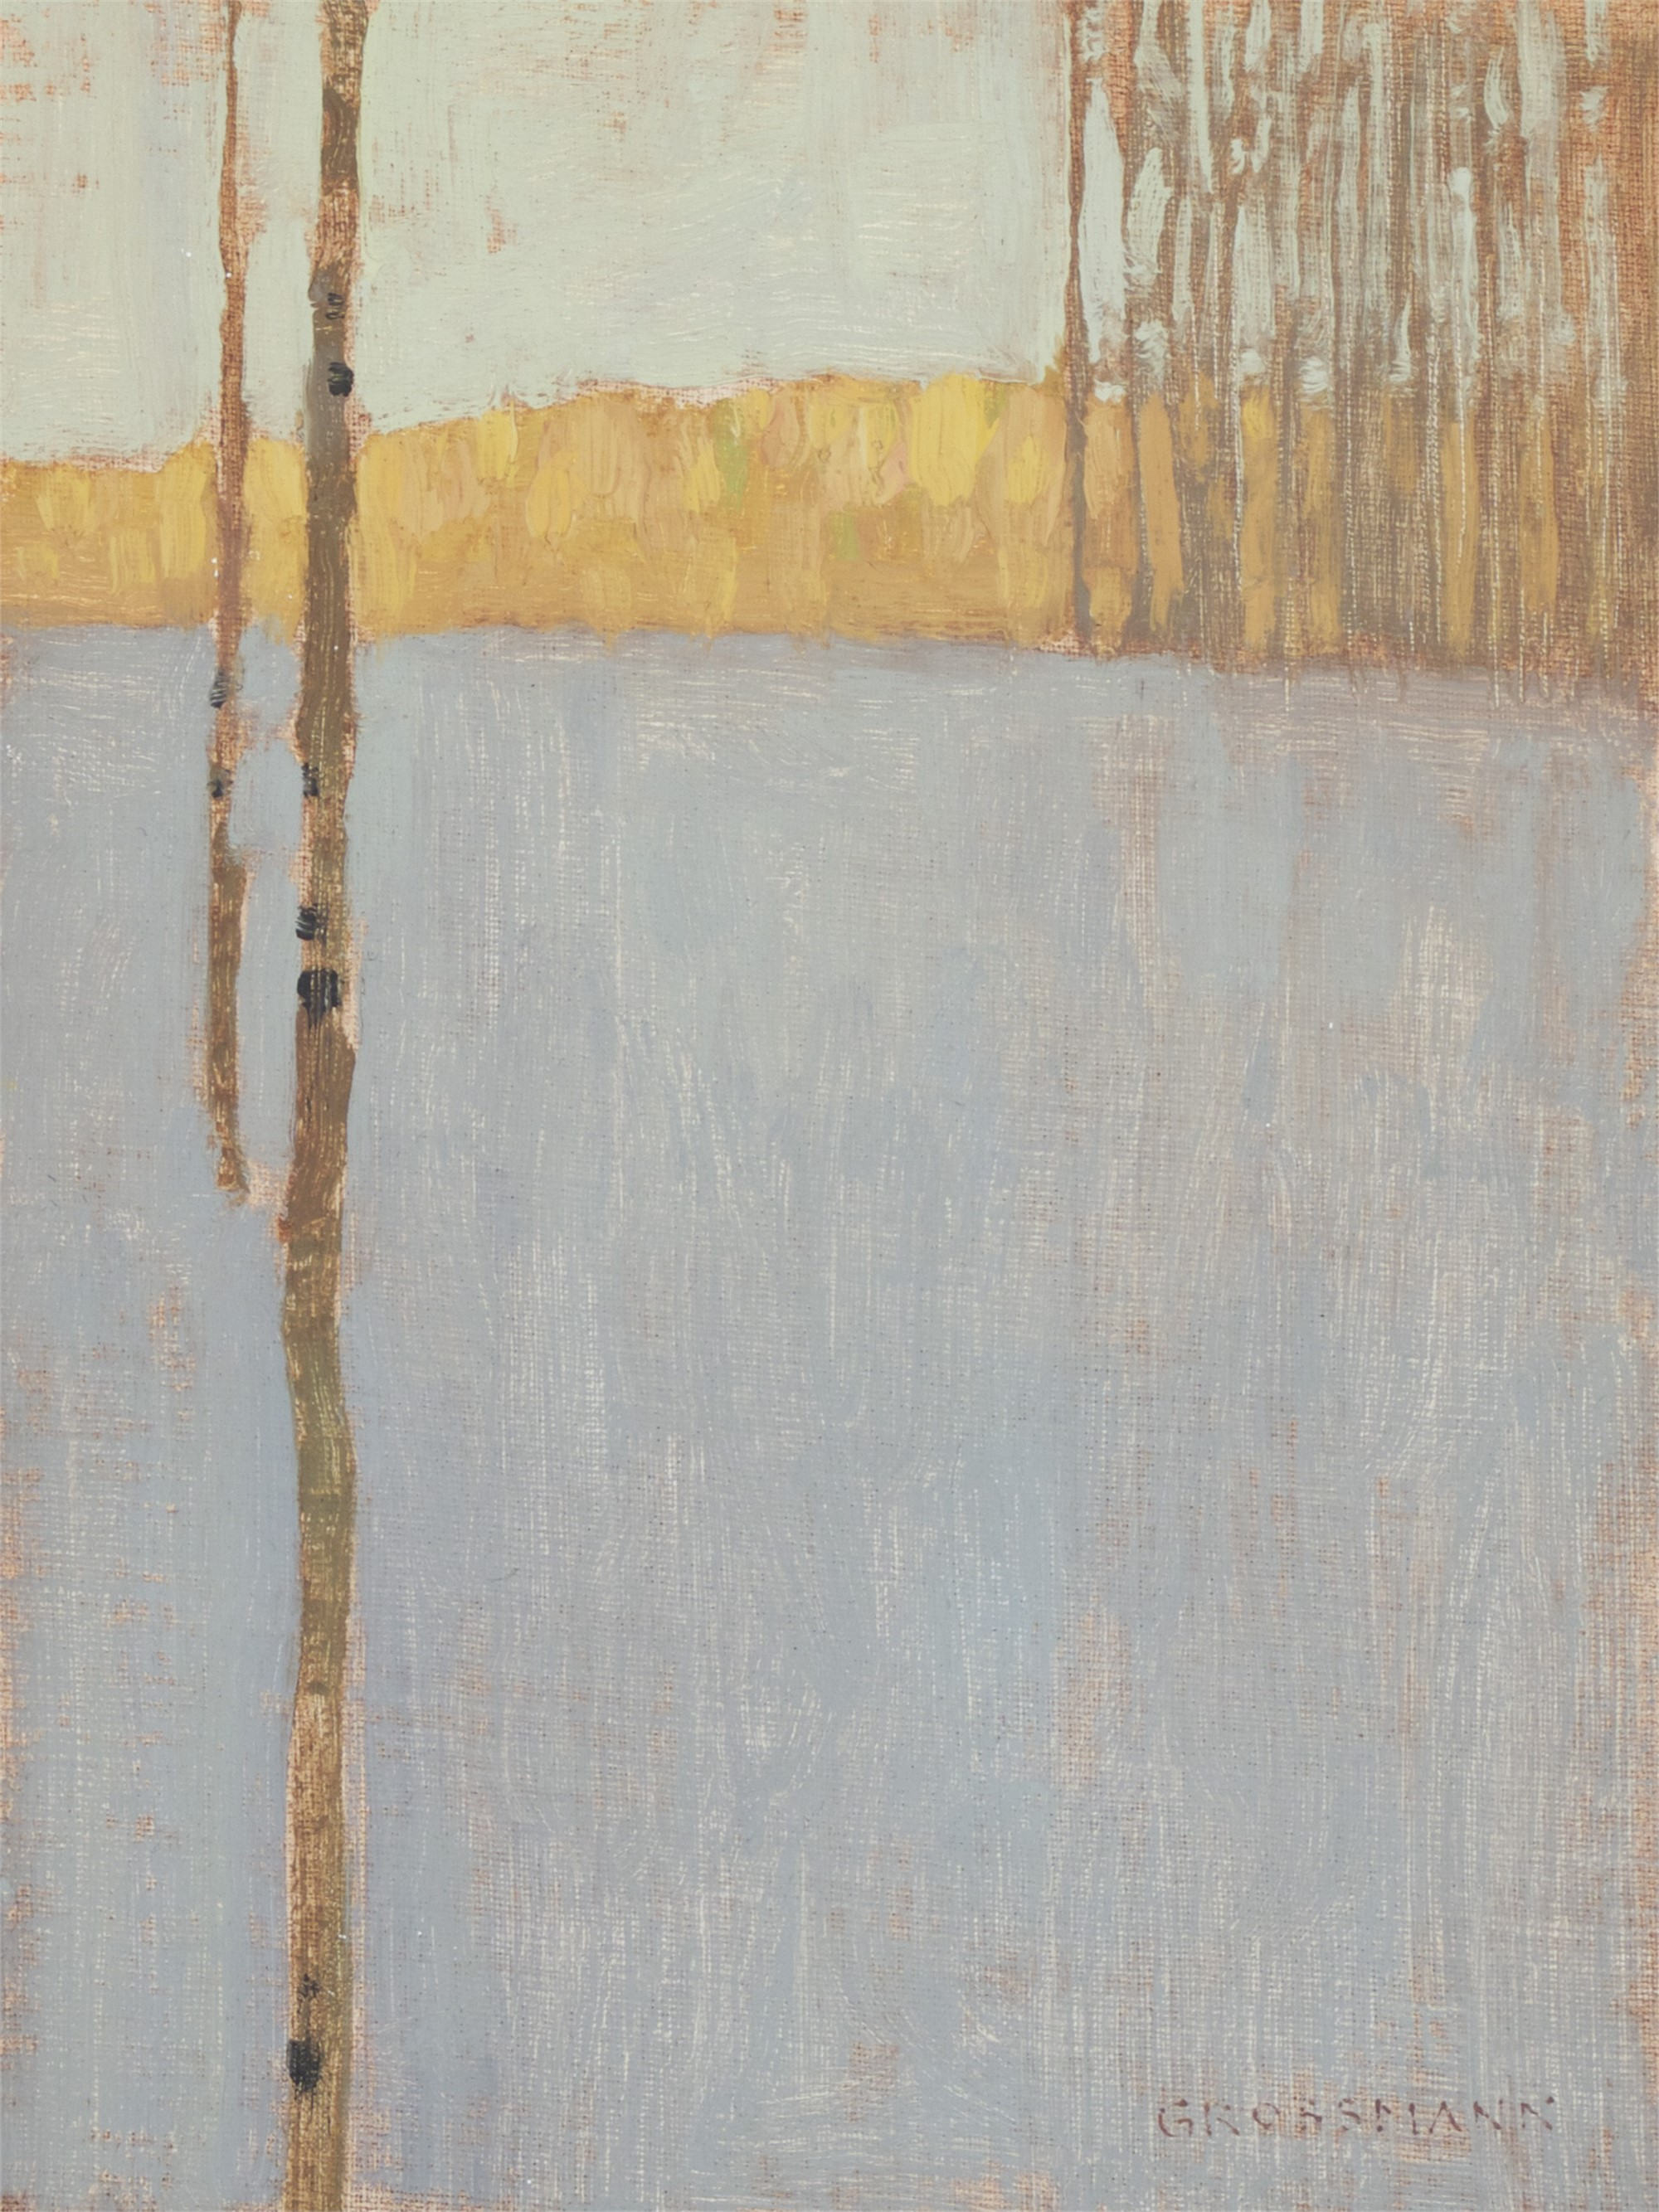 Open Winter Spaces by David Grossmann